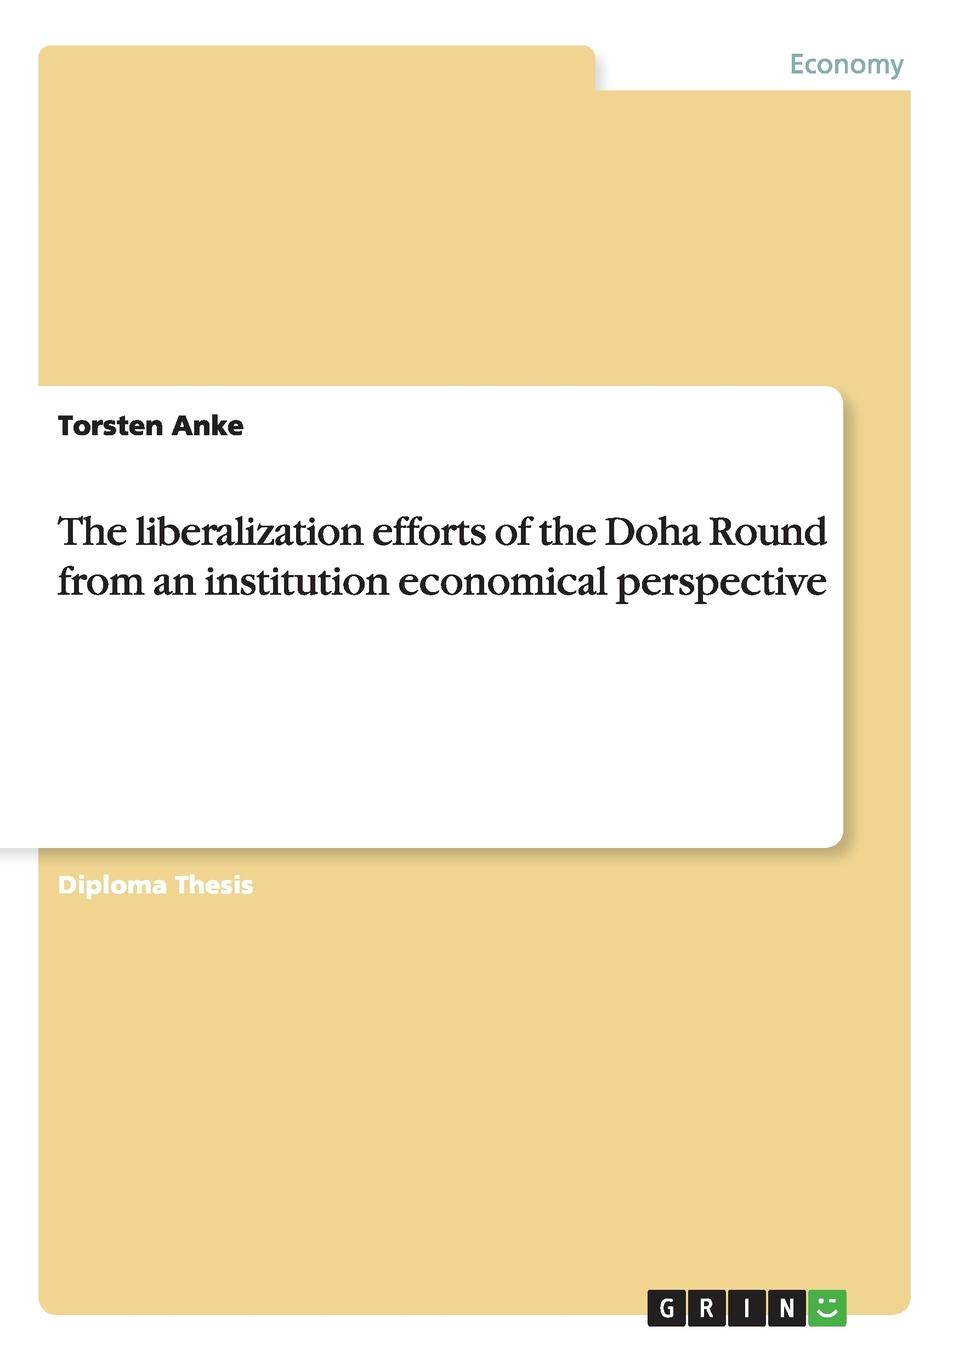 Torsten Anke The liberalization efforts of the Doha Round from an institution economical perspective did trade liberalization in india promote high polluting goods